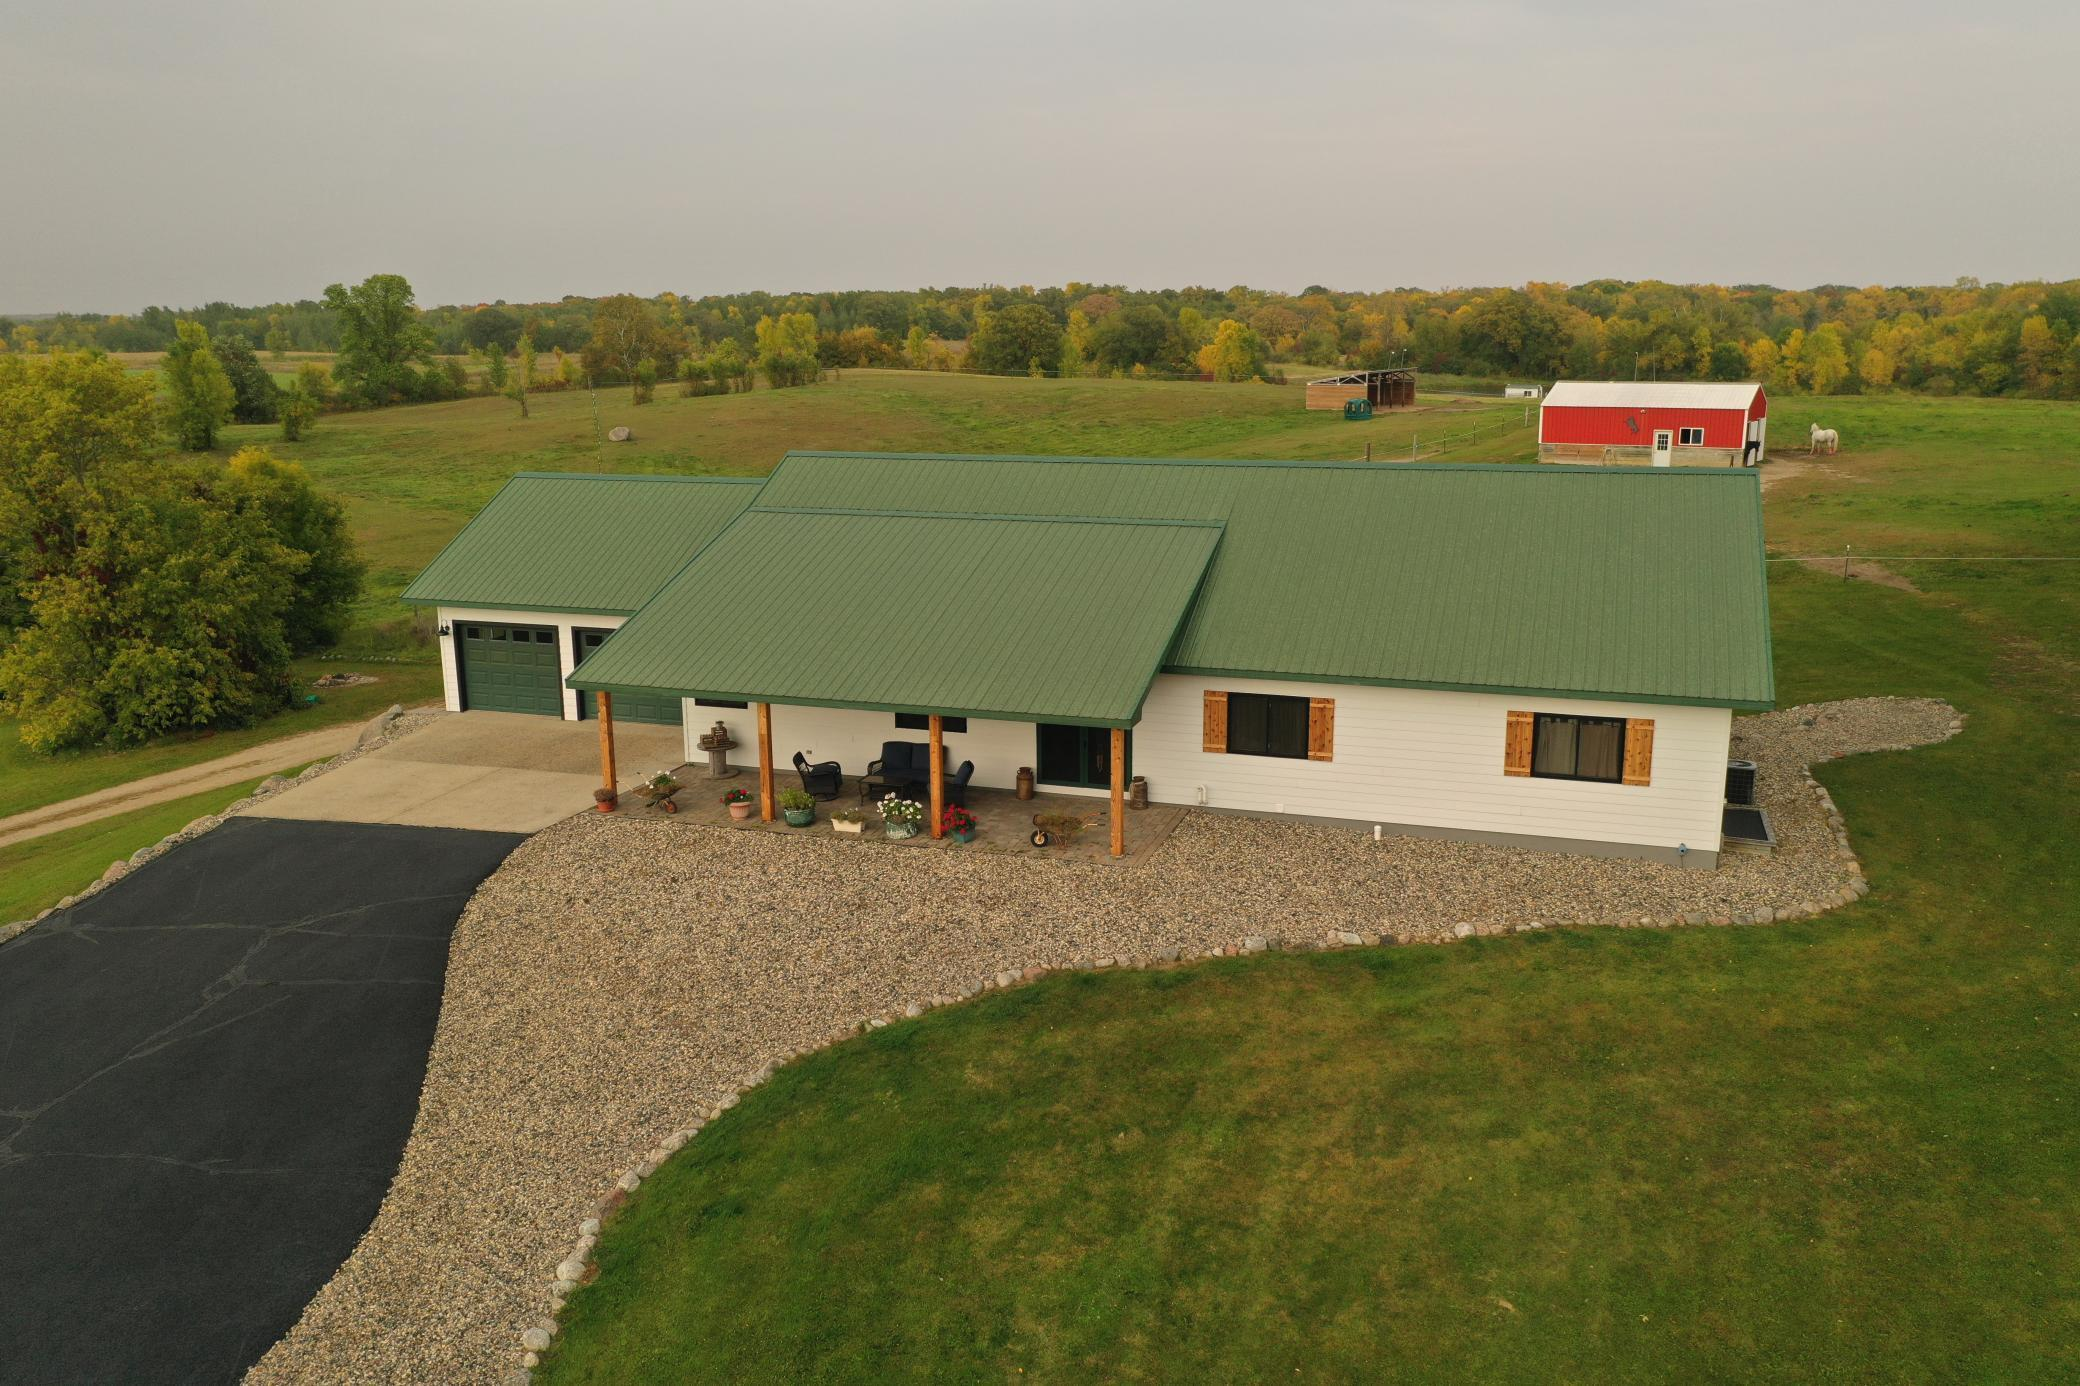 Country living meets LUXURY!! This gorgeous hobby farm property is situated in the midst of lake country just north of Alexandria! Open-concept 5 BR, 4 BA home with a mother-in-law suite and 2-attached garages, 2017 indoor arena, 2-stall barn with hay storage, heated shop with office, tackroom, and 3/4 bathroom, 3 lean-to shelters, 2 outdoor arenas, roundpen, and warming house next to the lighted pond. We also can't forget about the trails through the backwoods with deer cams scattered throughout! This home has new LP SmartSide siding and windows as of 2020 and a freshly sealed asphalt driveway. This is the ideal property for horse lovers, a bed and breakfast, or to operate your business out of! Absolutely gorgeous setting and must-see property! See supplement for more details!